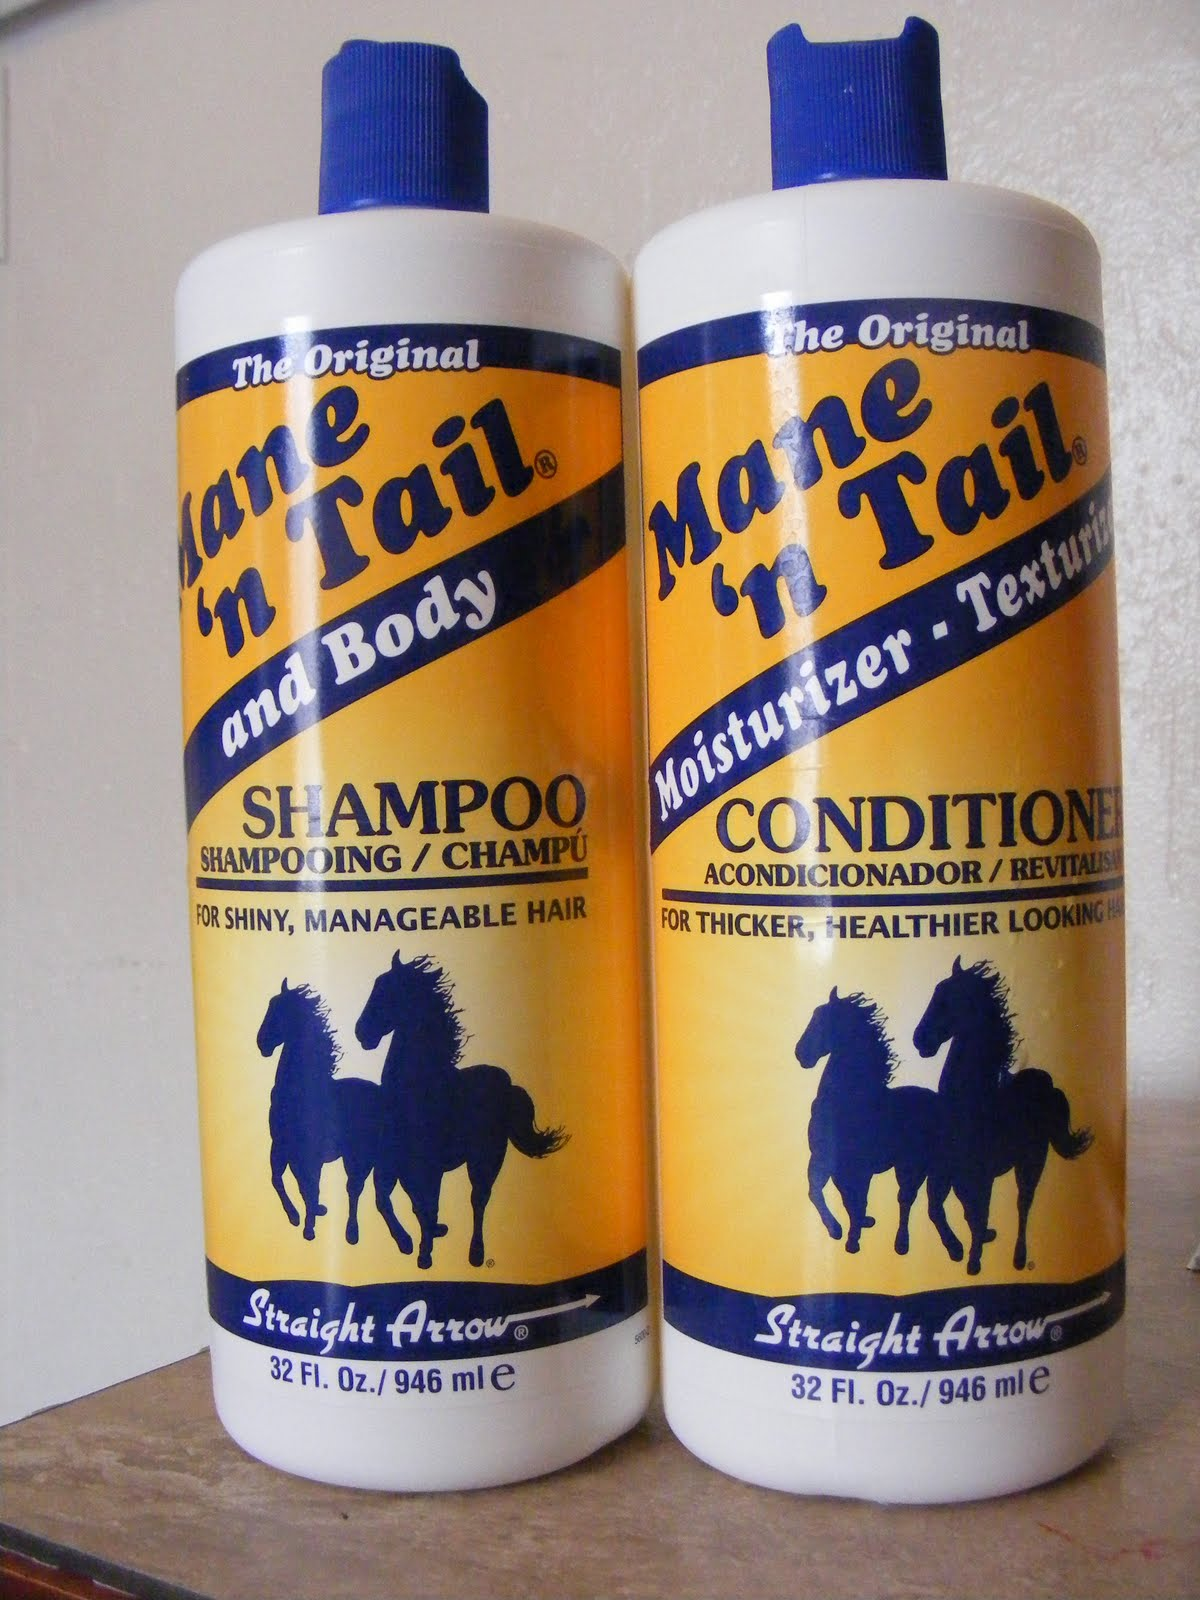 Castile soap for the best mane and tail shampoo that meets body care Original Mane 'n Tail Shampoo, Ounce. by Mane 'n Tail. $ $ 5 Natural Rapport Horse Shampoo & Conditioner-Full Mane & Tail Treatment for Horses, Equine Wash. by Natural Rapport. $ $ 12 Subscribe & Save. More options available.